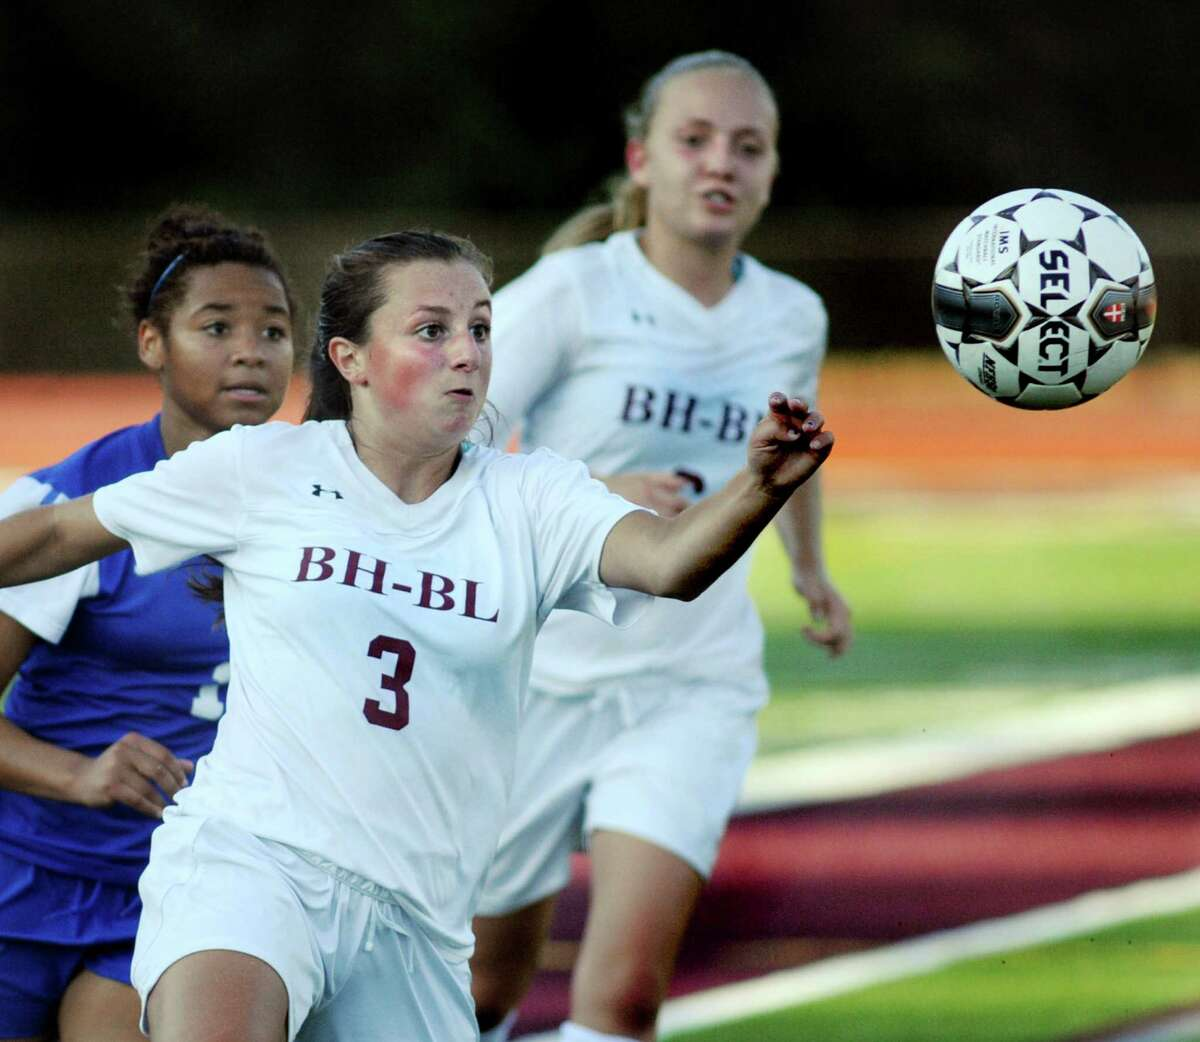 Burnt Hills' Amalia Daviero, center, and Casey Doherty, right, and Saratoga's Ya'nique Van Ness chase after a loose ball during their soccer game on Thursday, Sept. 17, 2015, at Burnt Hills High in Burnt Hills, N.Y. (Cindy Schultz / Times Union)